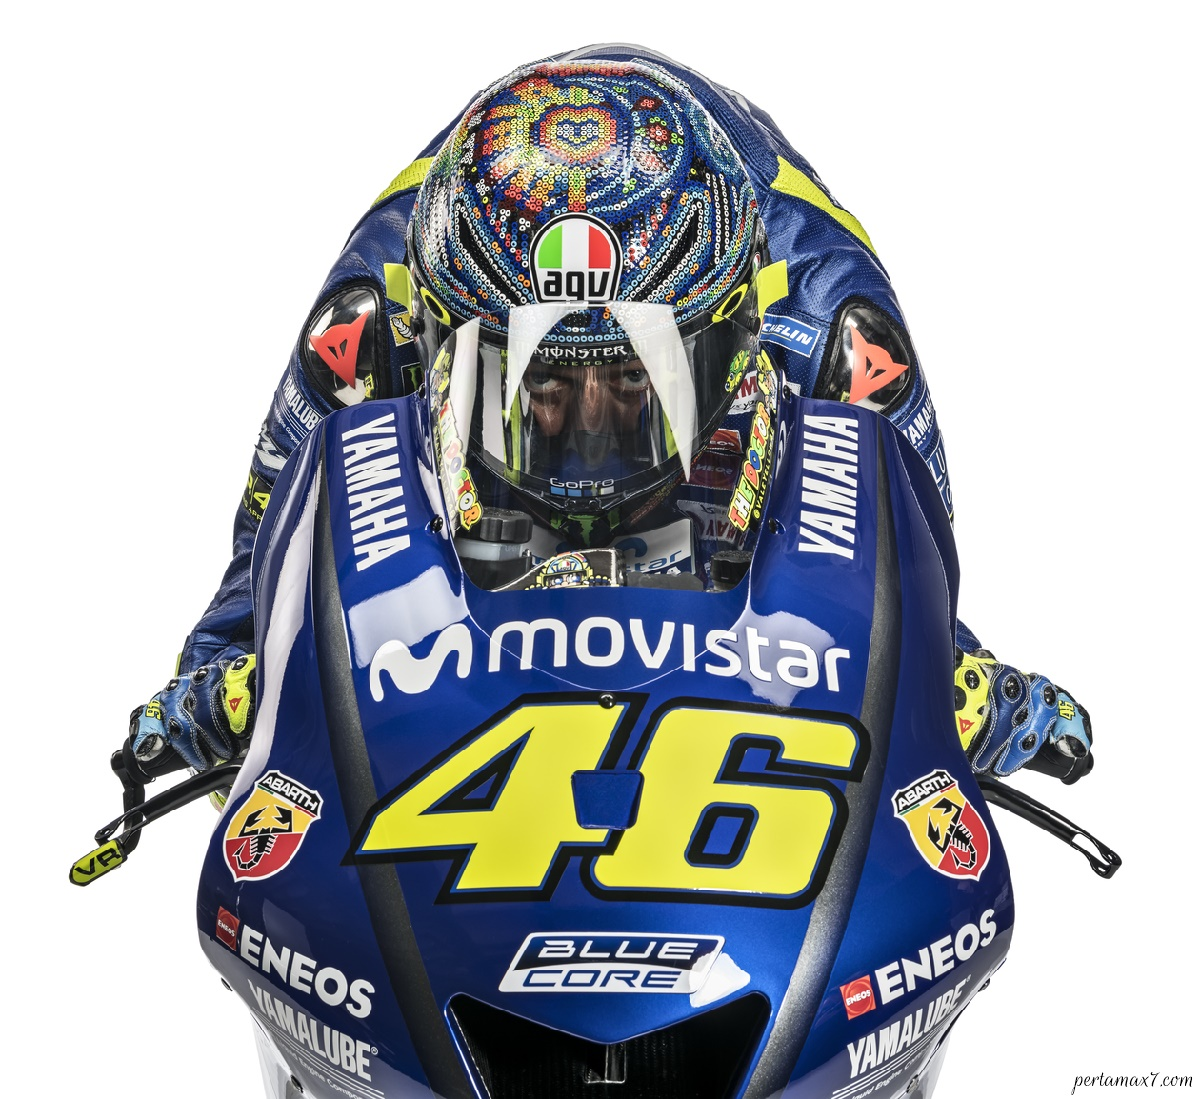 Wallpaper Valentino Rossi Movistar Yamaha MotoGP 2018 HD